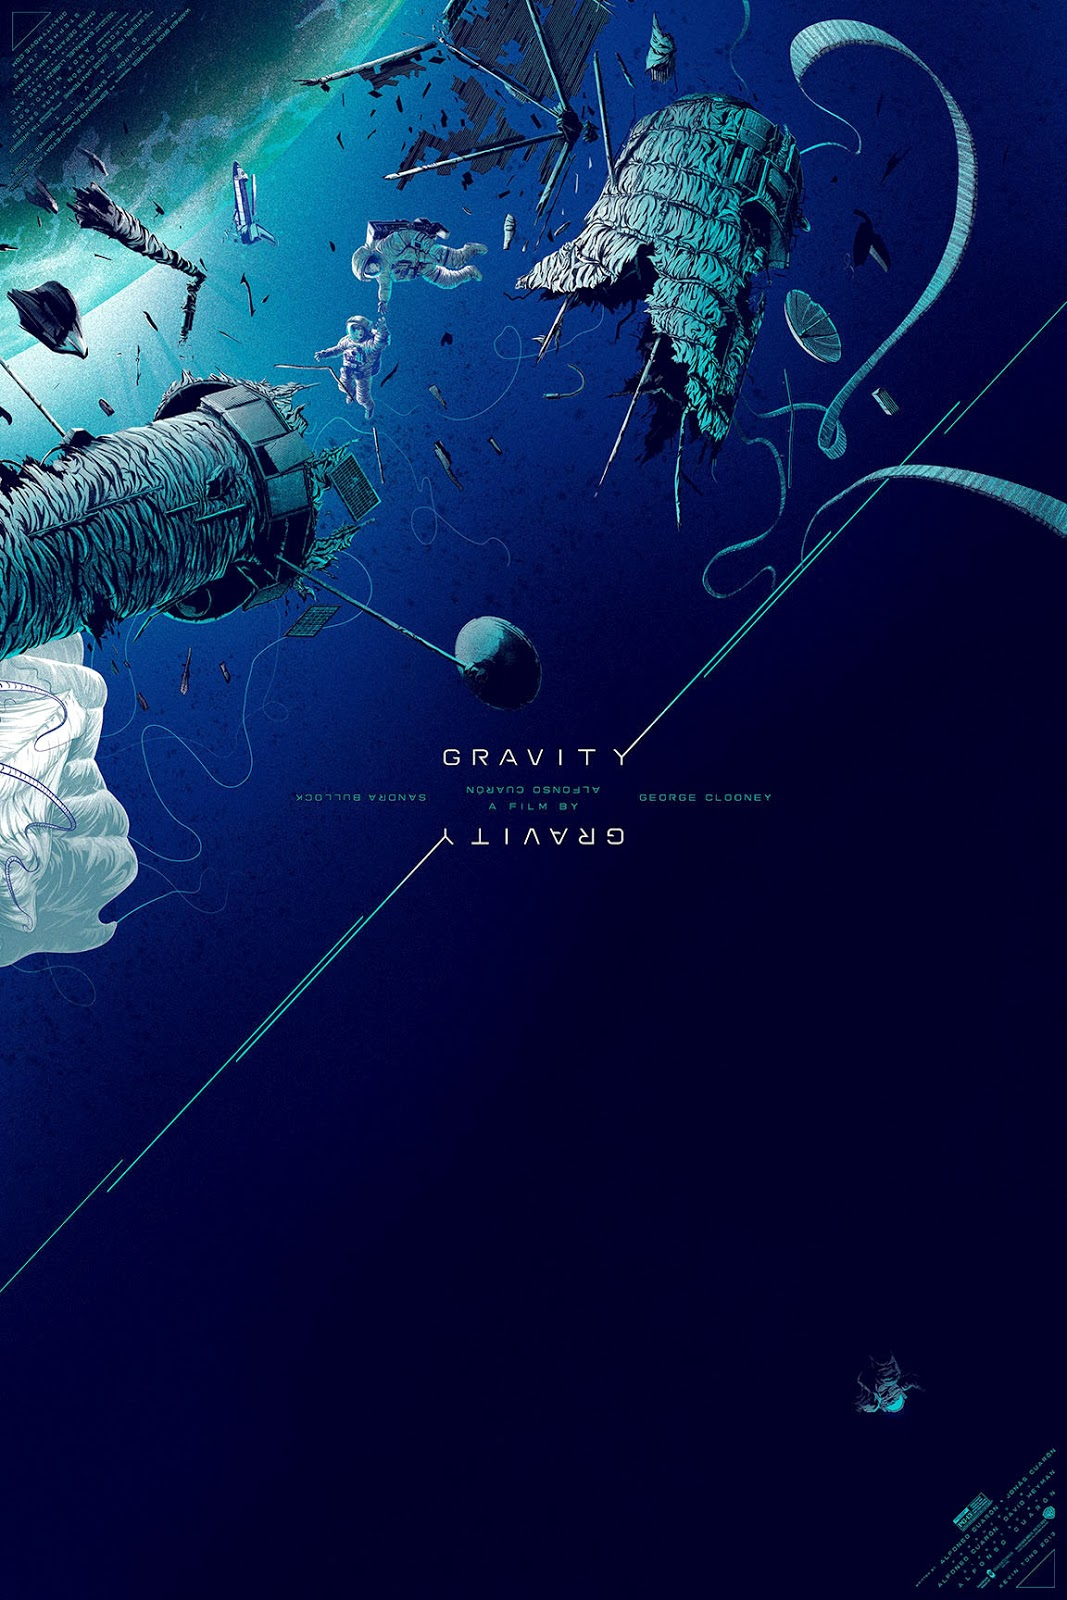 Inside The Rock Poster Frame Blog Kevin Tong Gravity